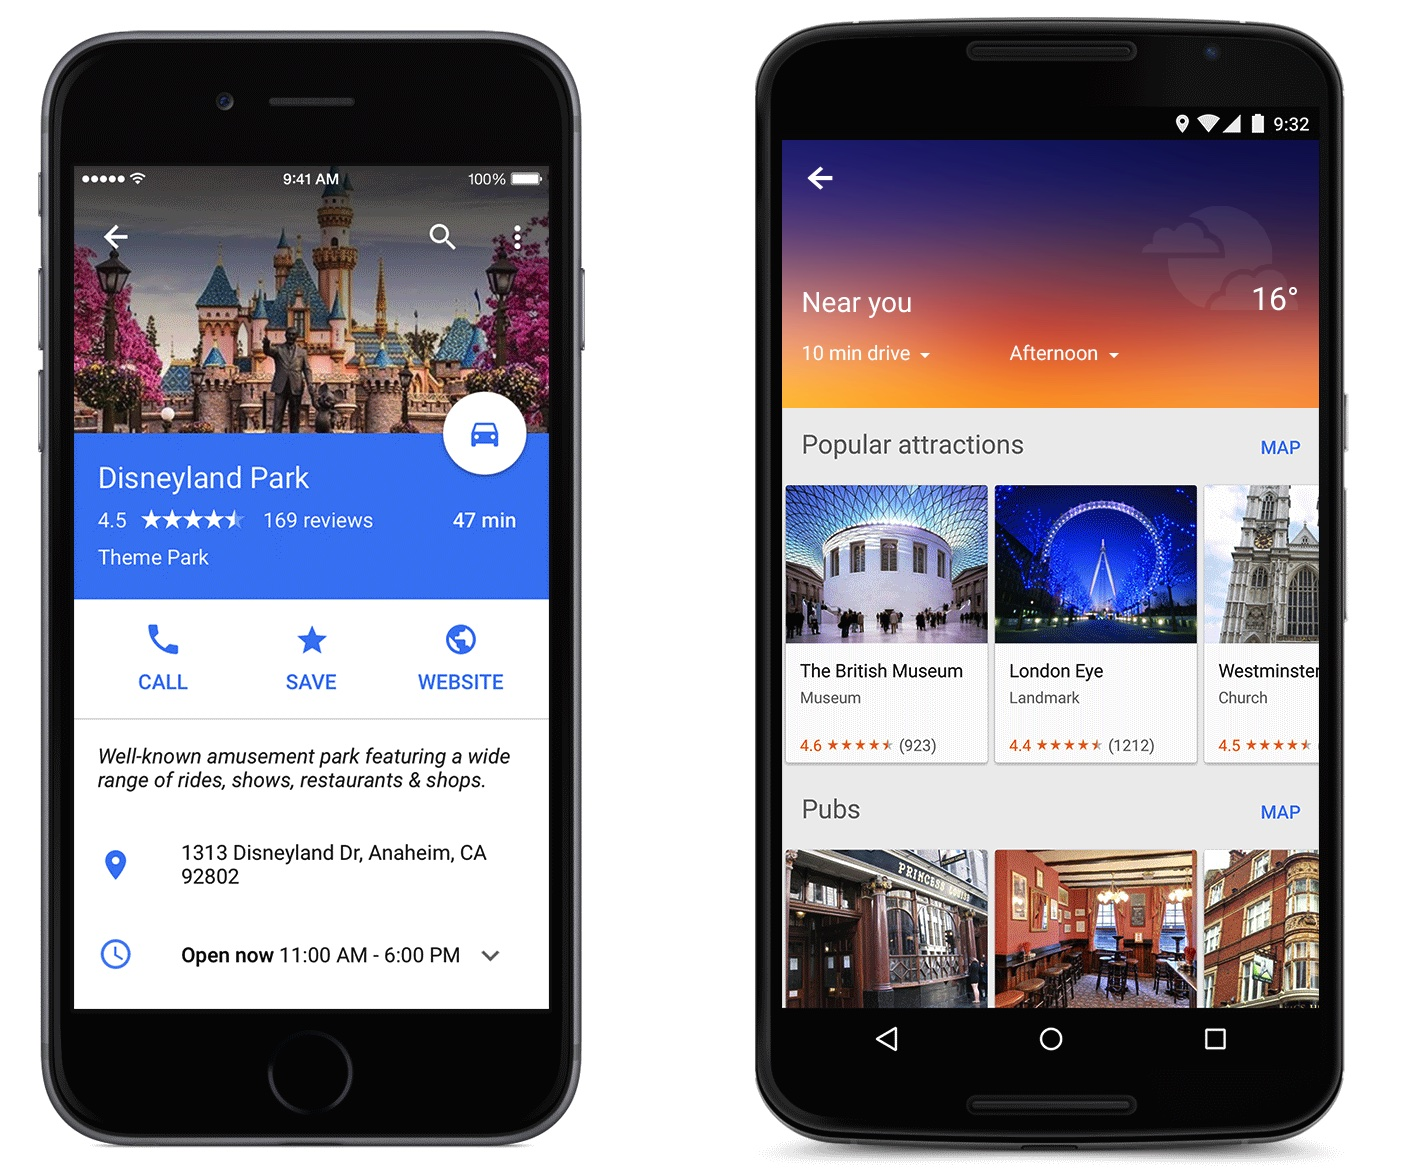 Google Maps for iOS (Info sheet and Explore, Material Design 001)